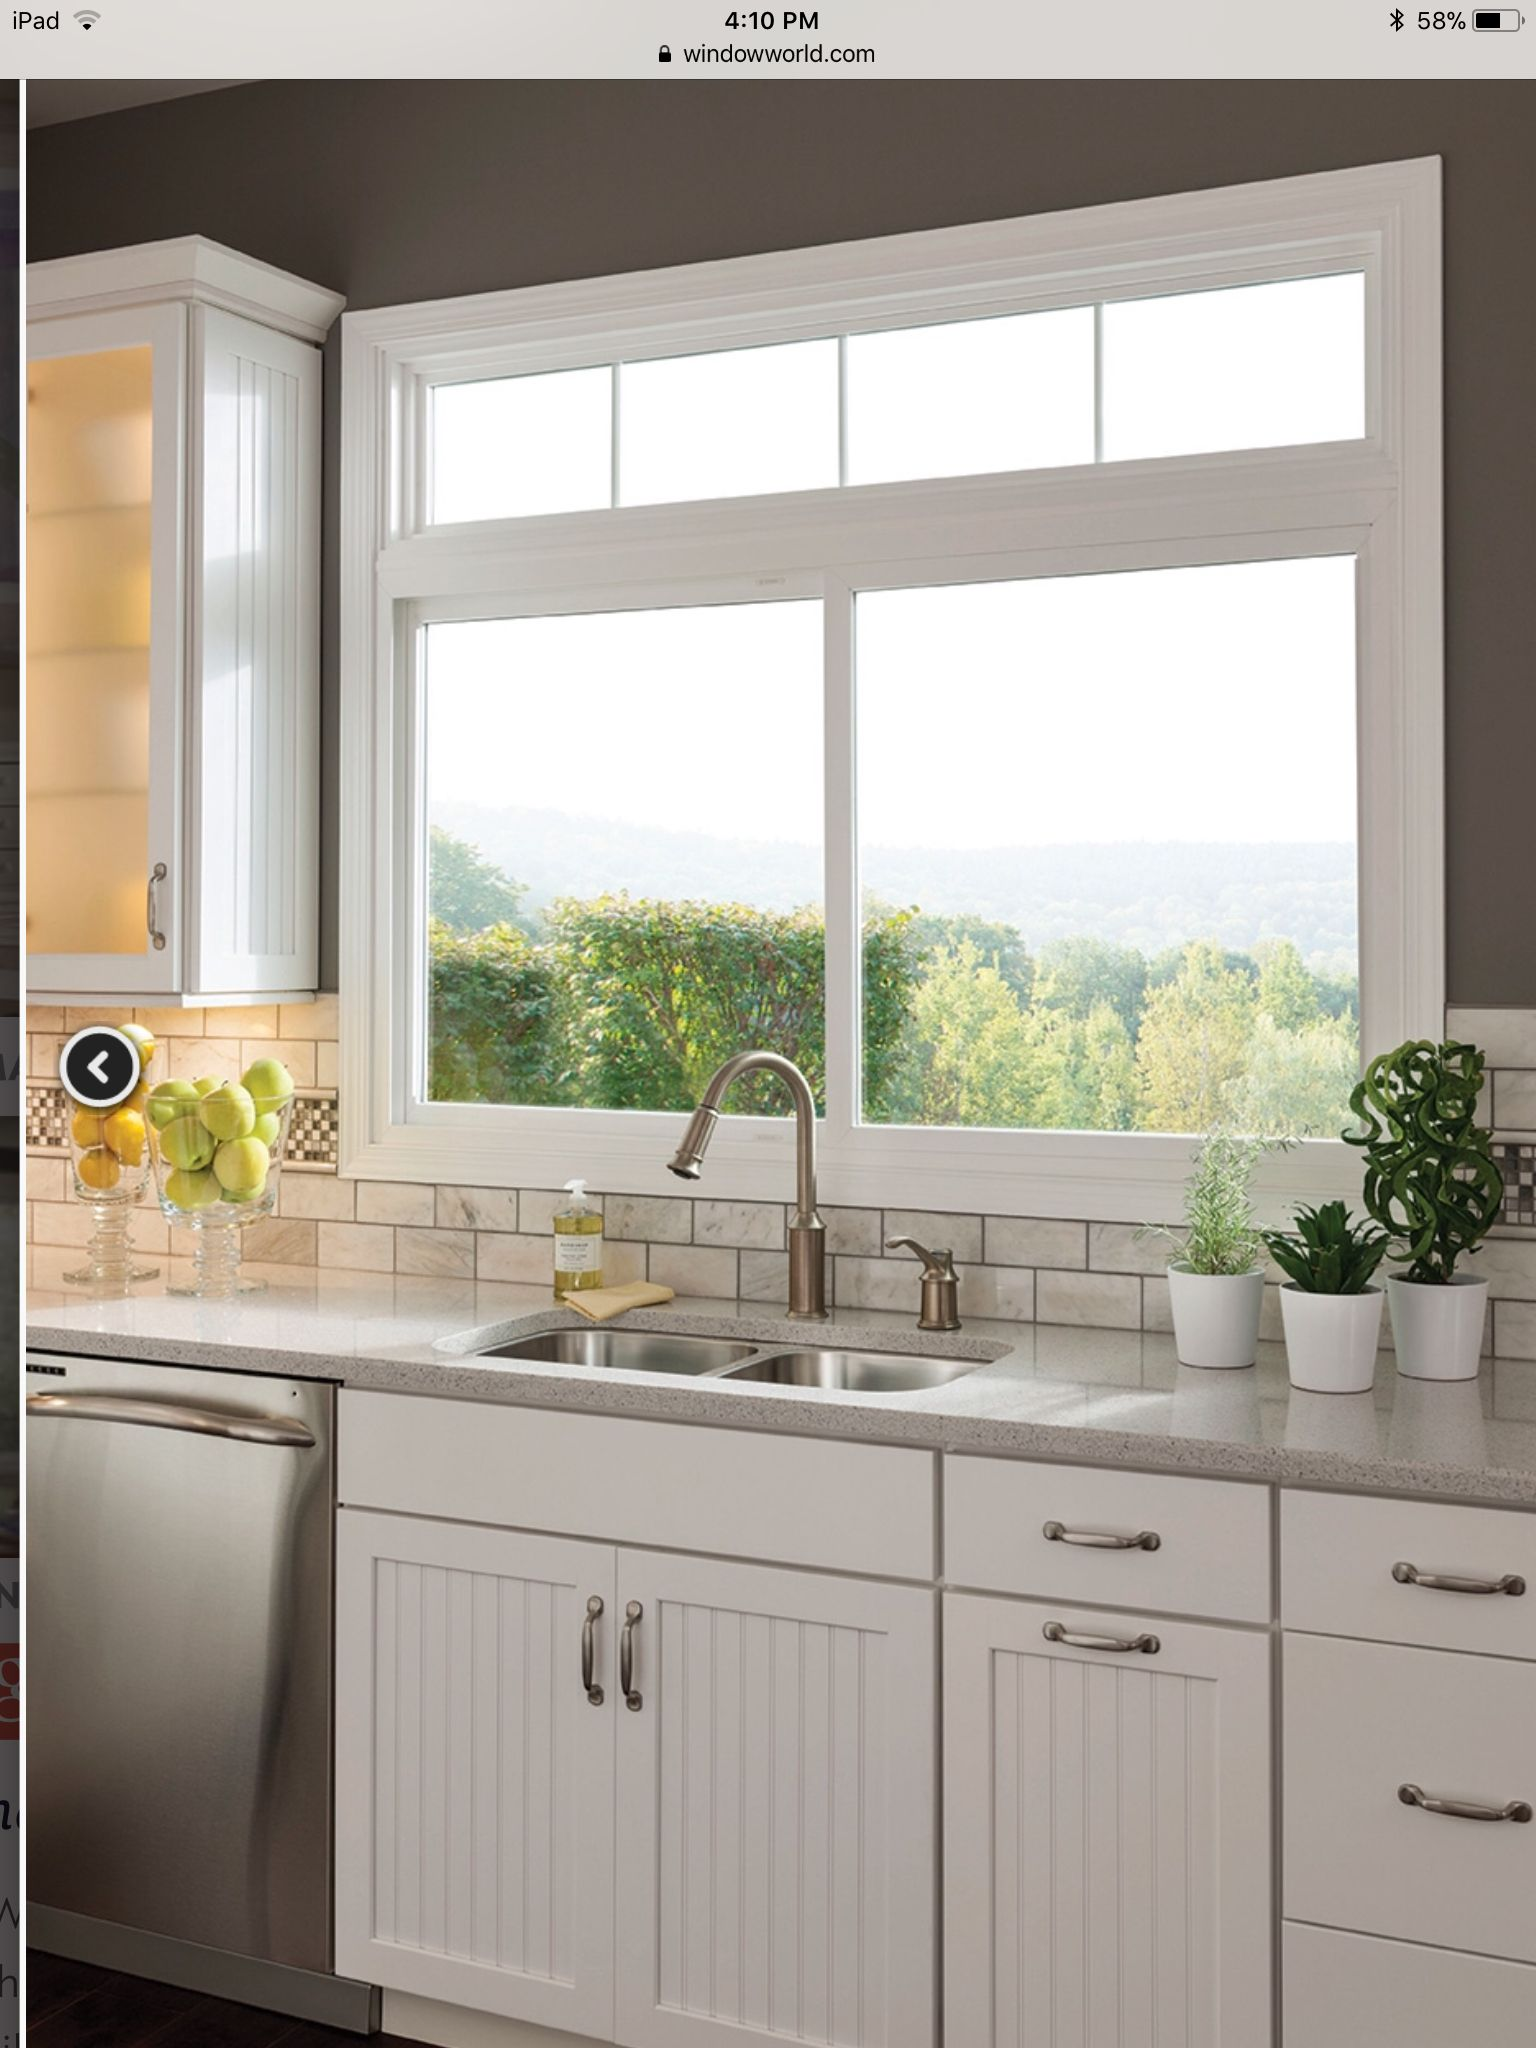 Sliding window over kitchen sink  pin by b j dunn on house build  pinterest  house building and house